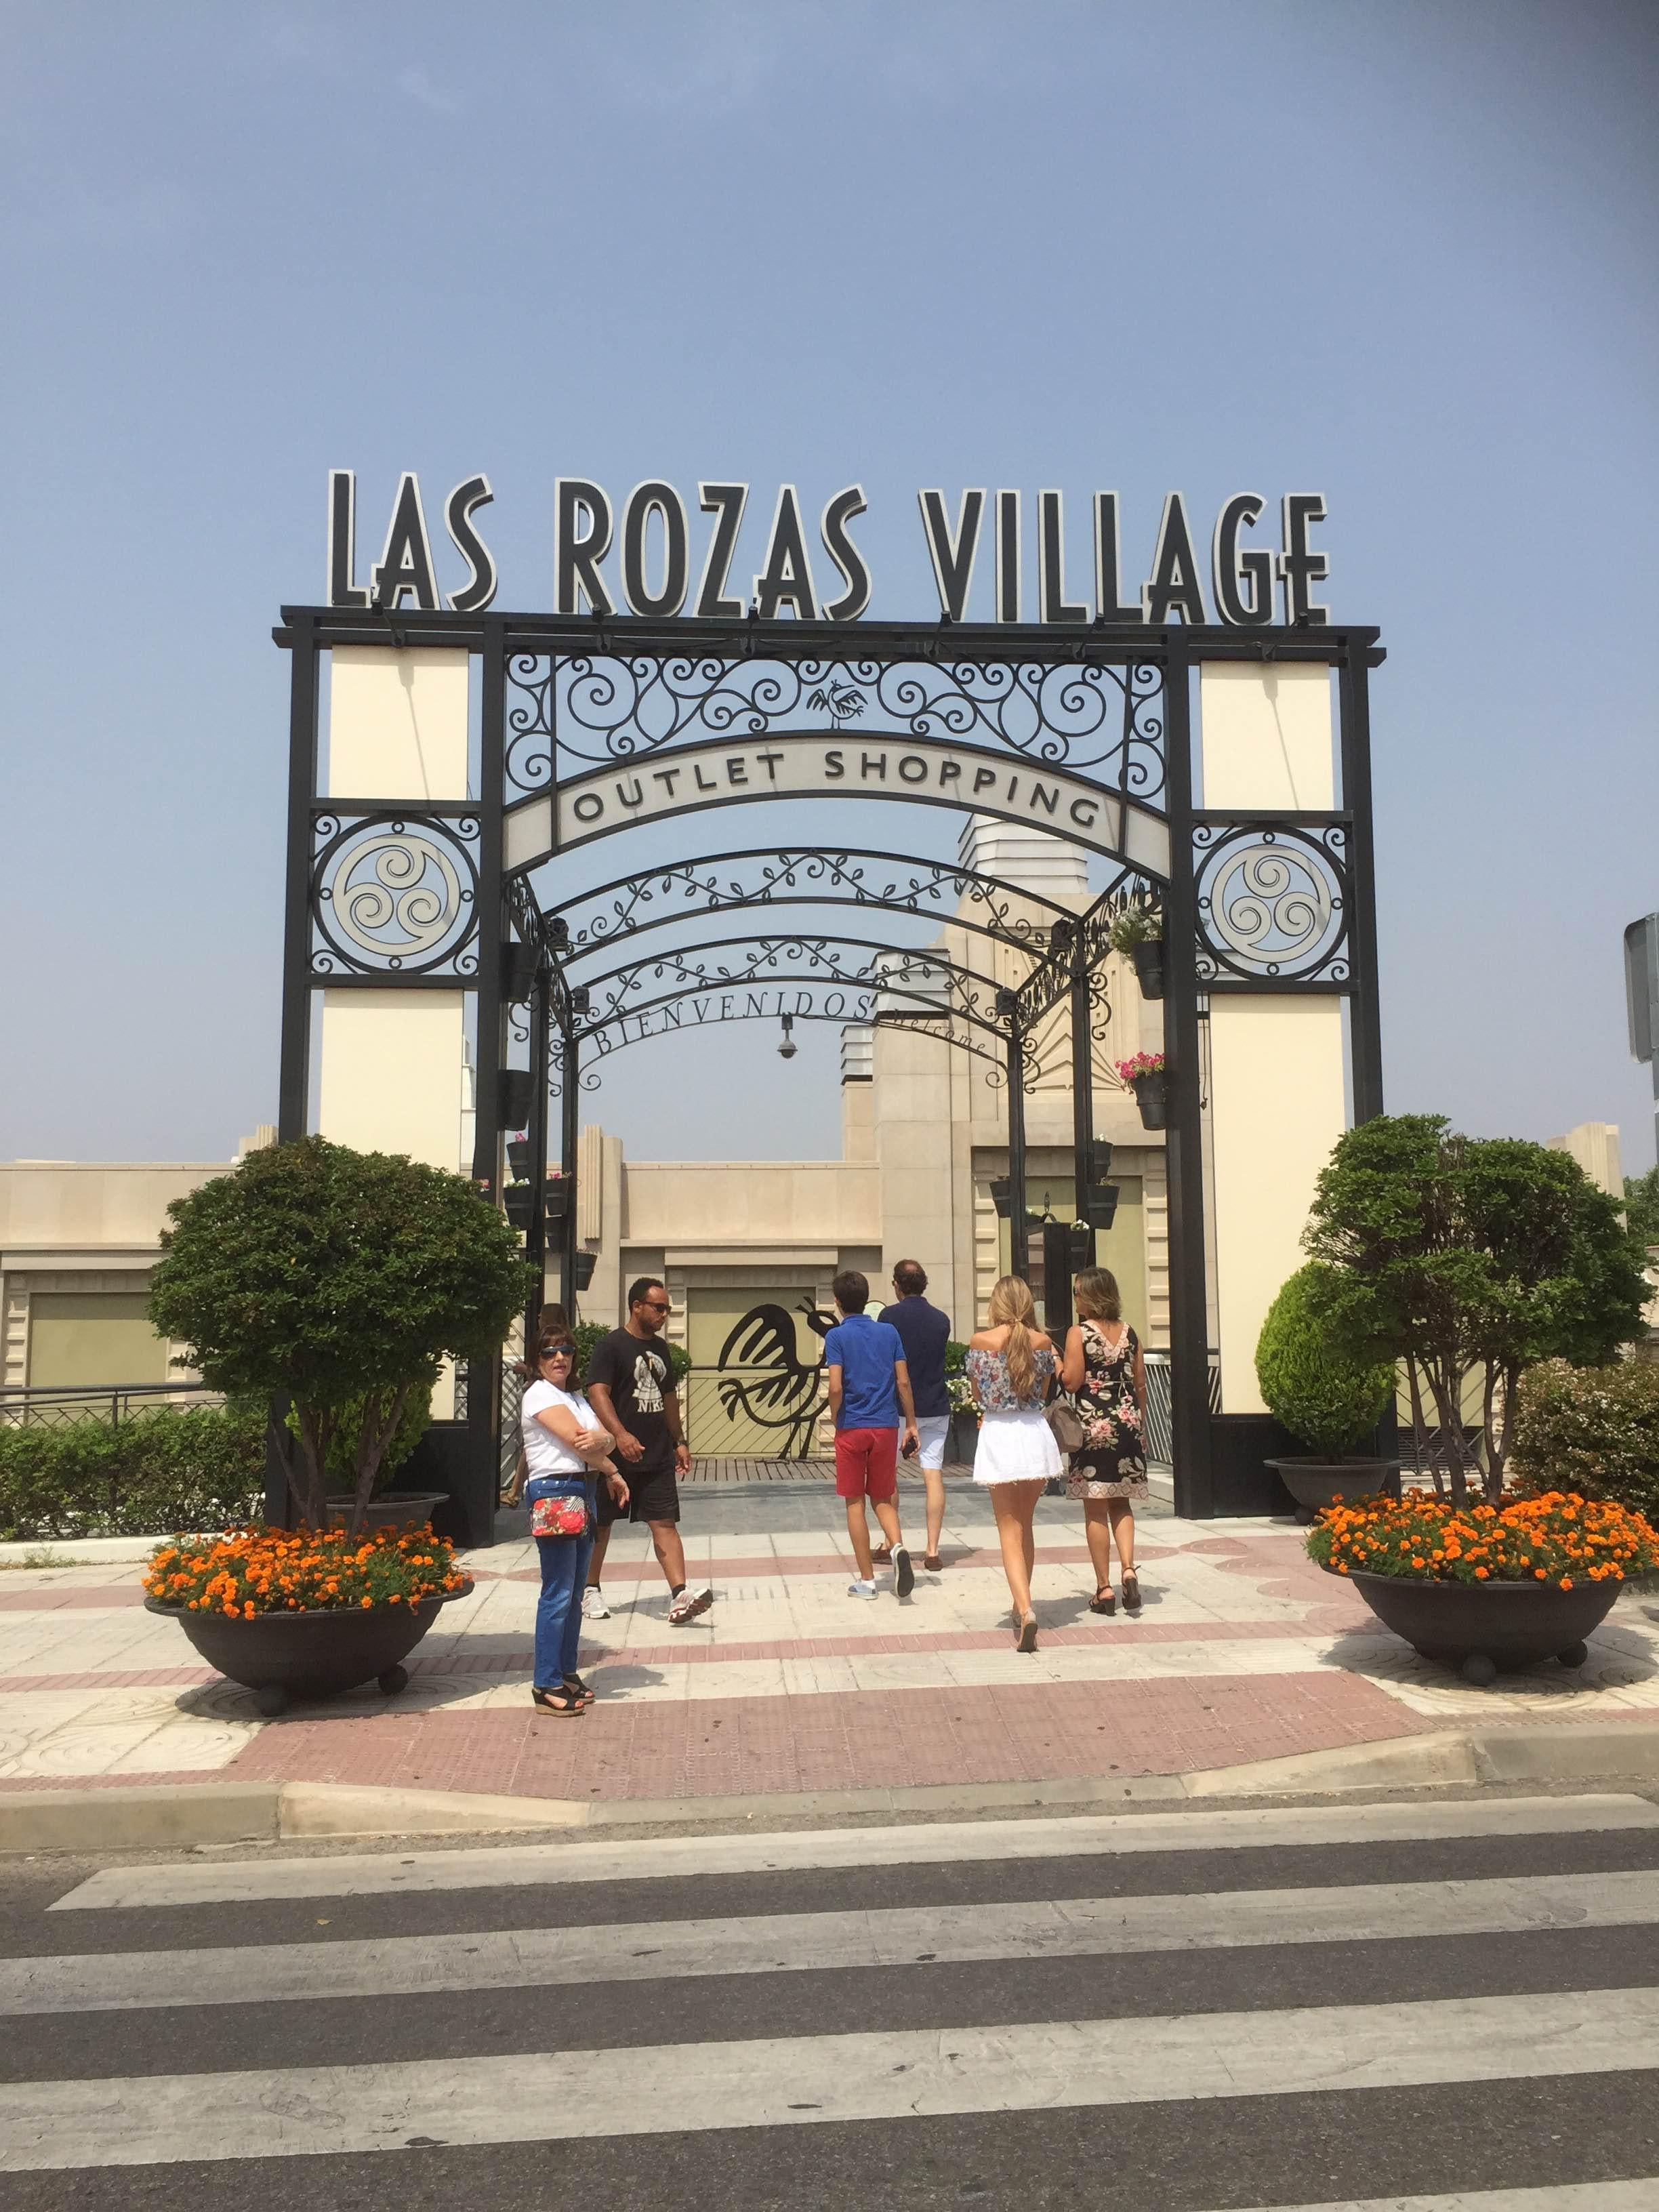 Arco en Las Rozas Village outlet shopping